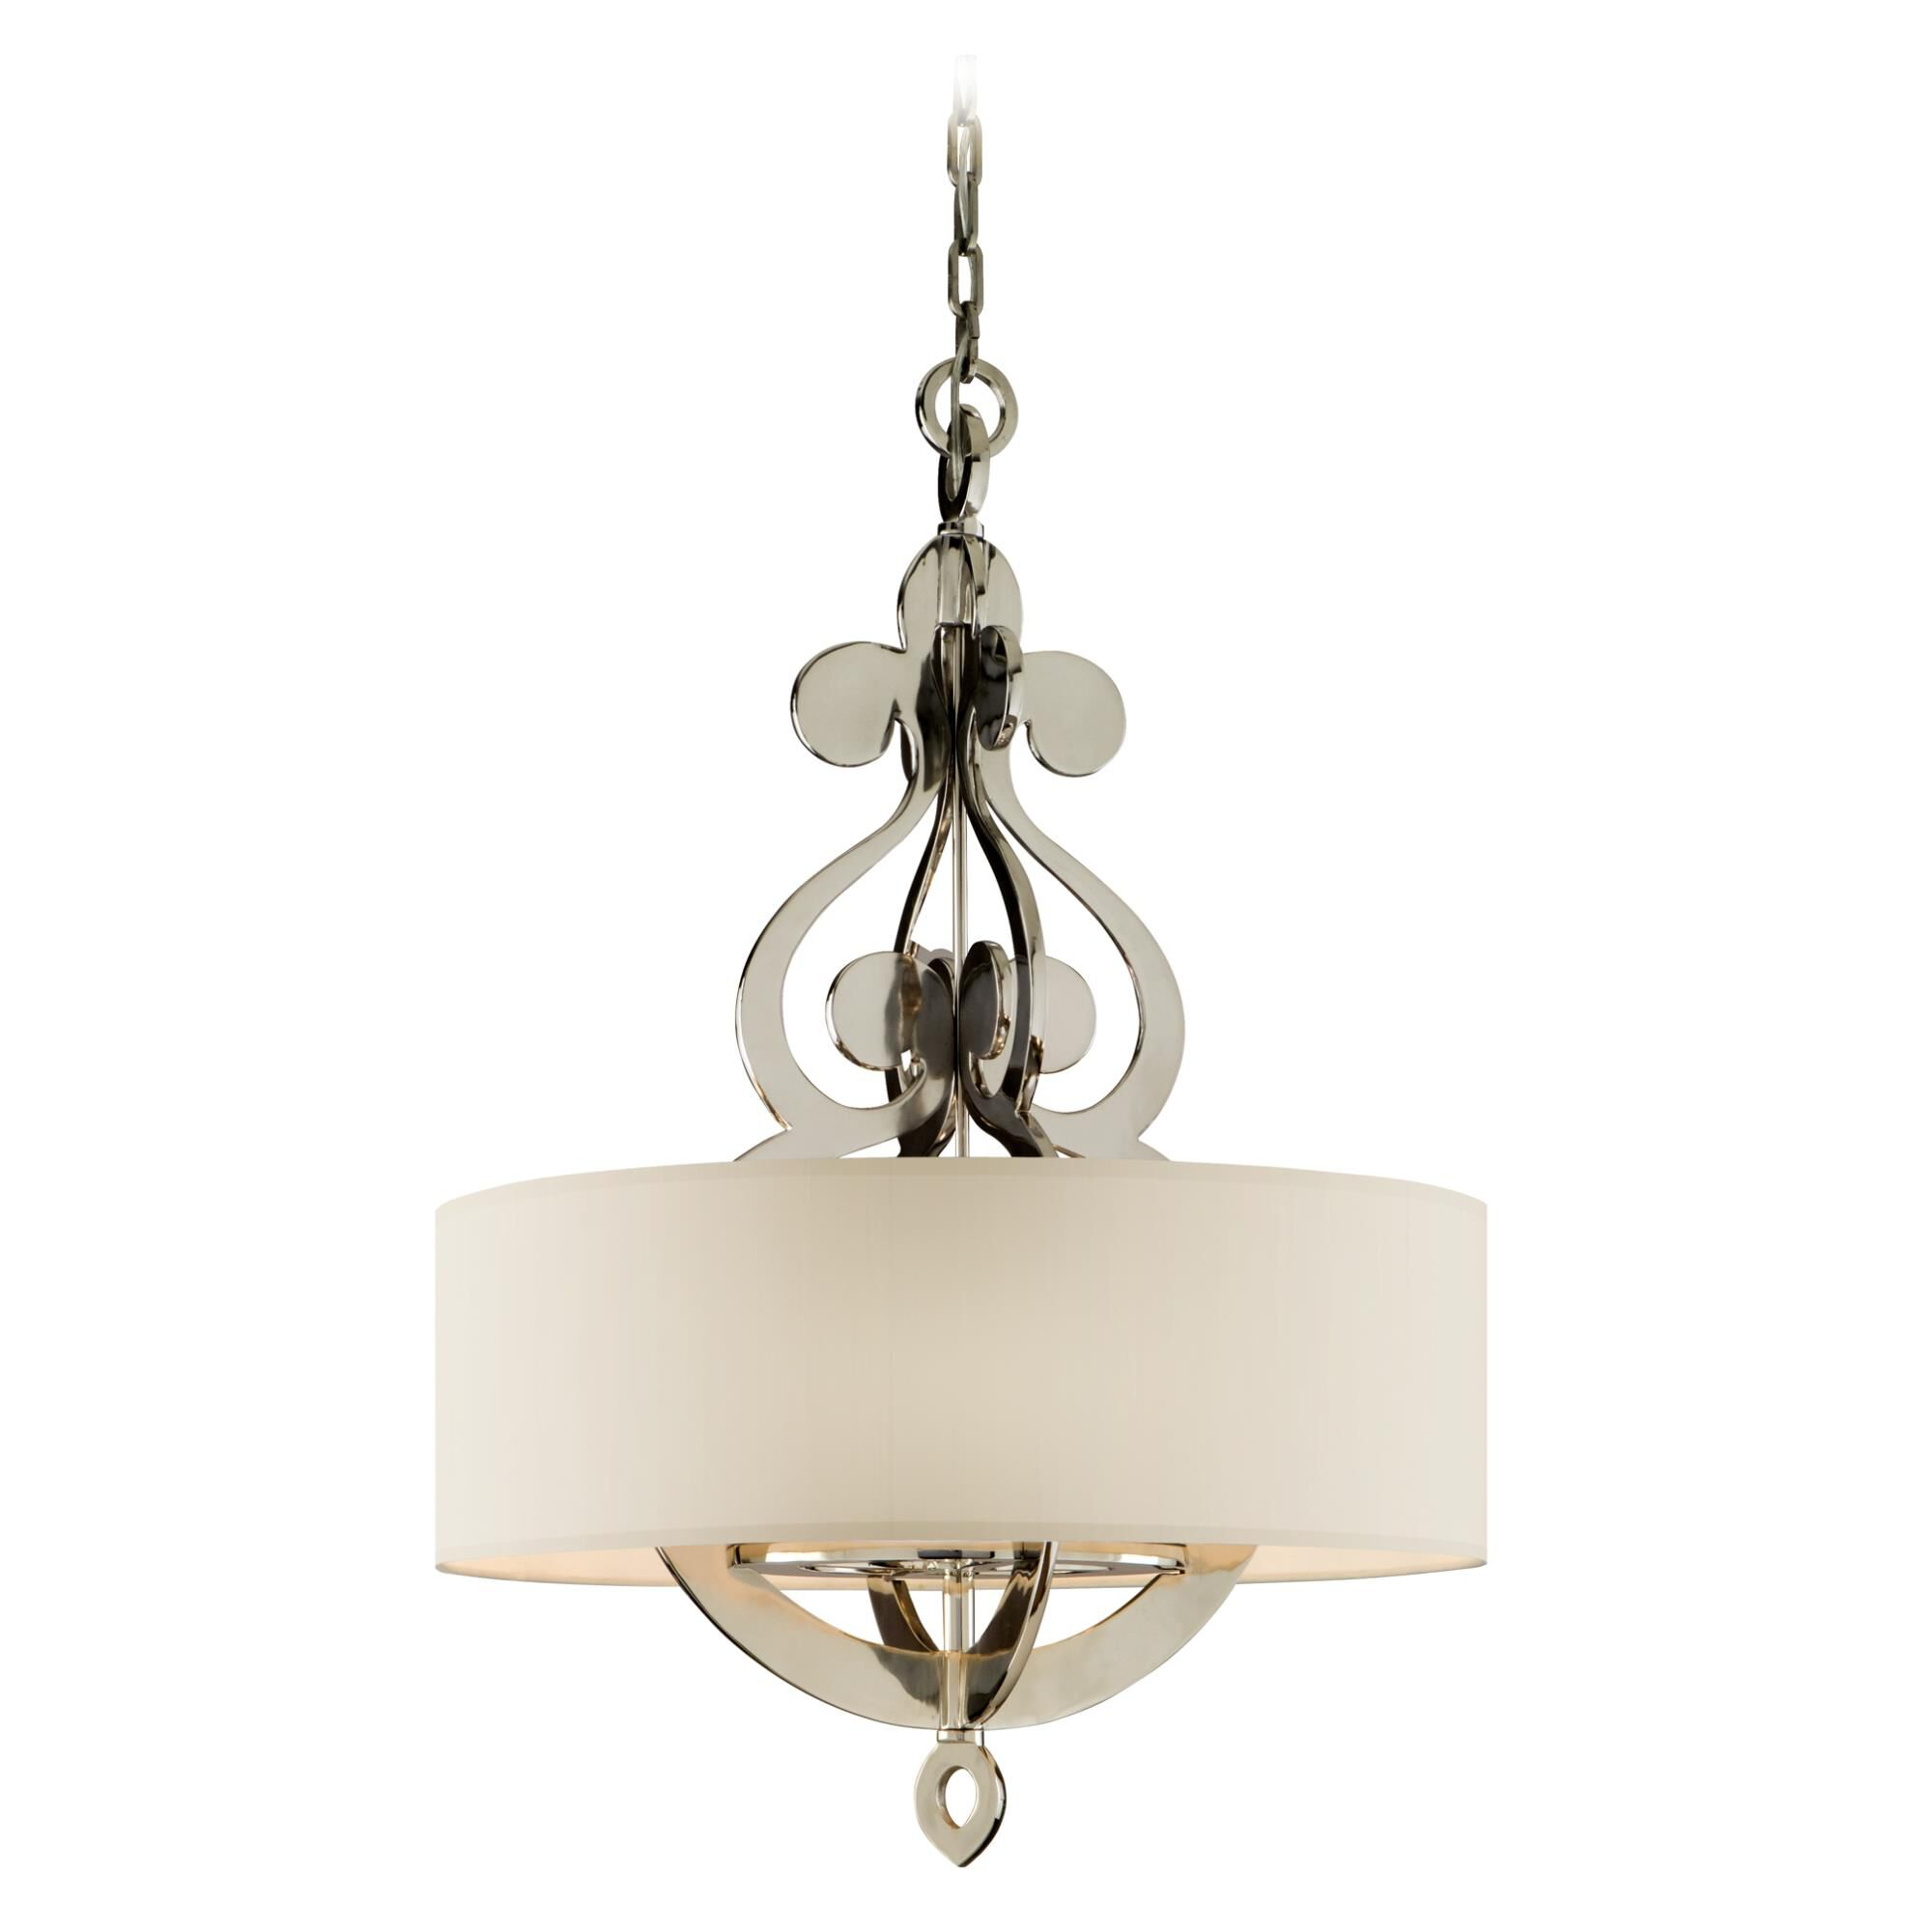 Corbett Lighting Olivia 13 Inch Mini Pendant Olivia - 102-48 - Transitional Mini Pendant